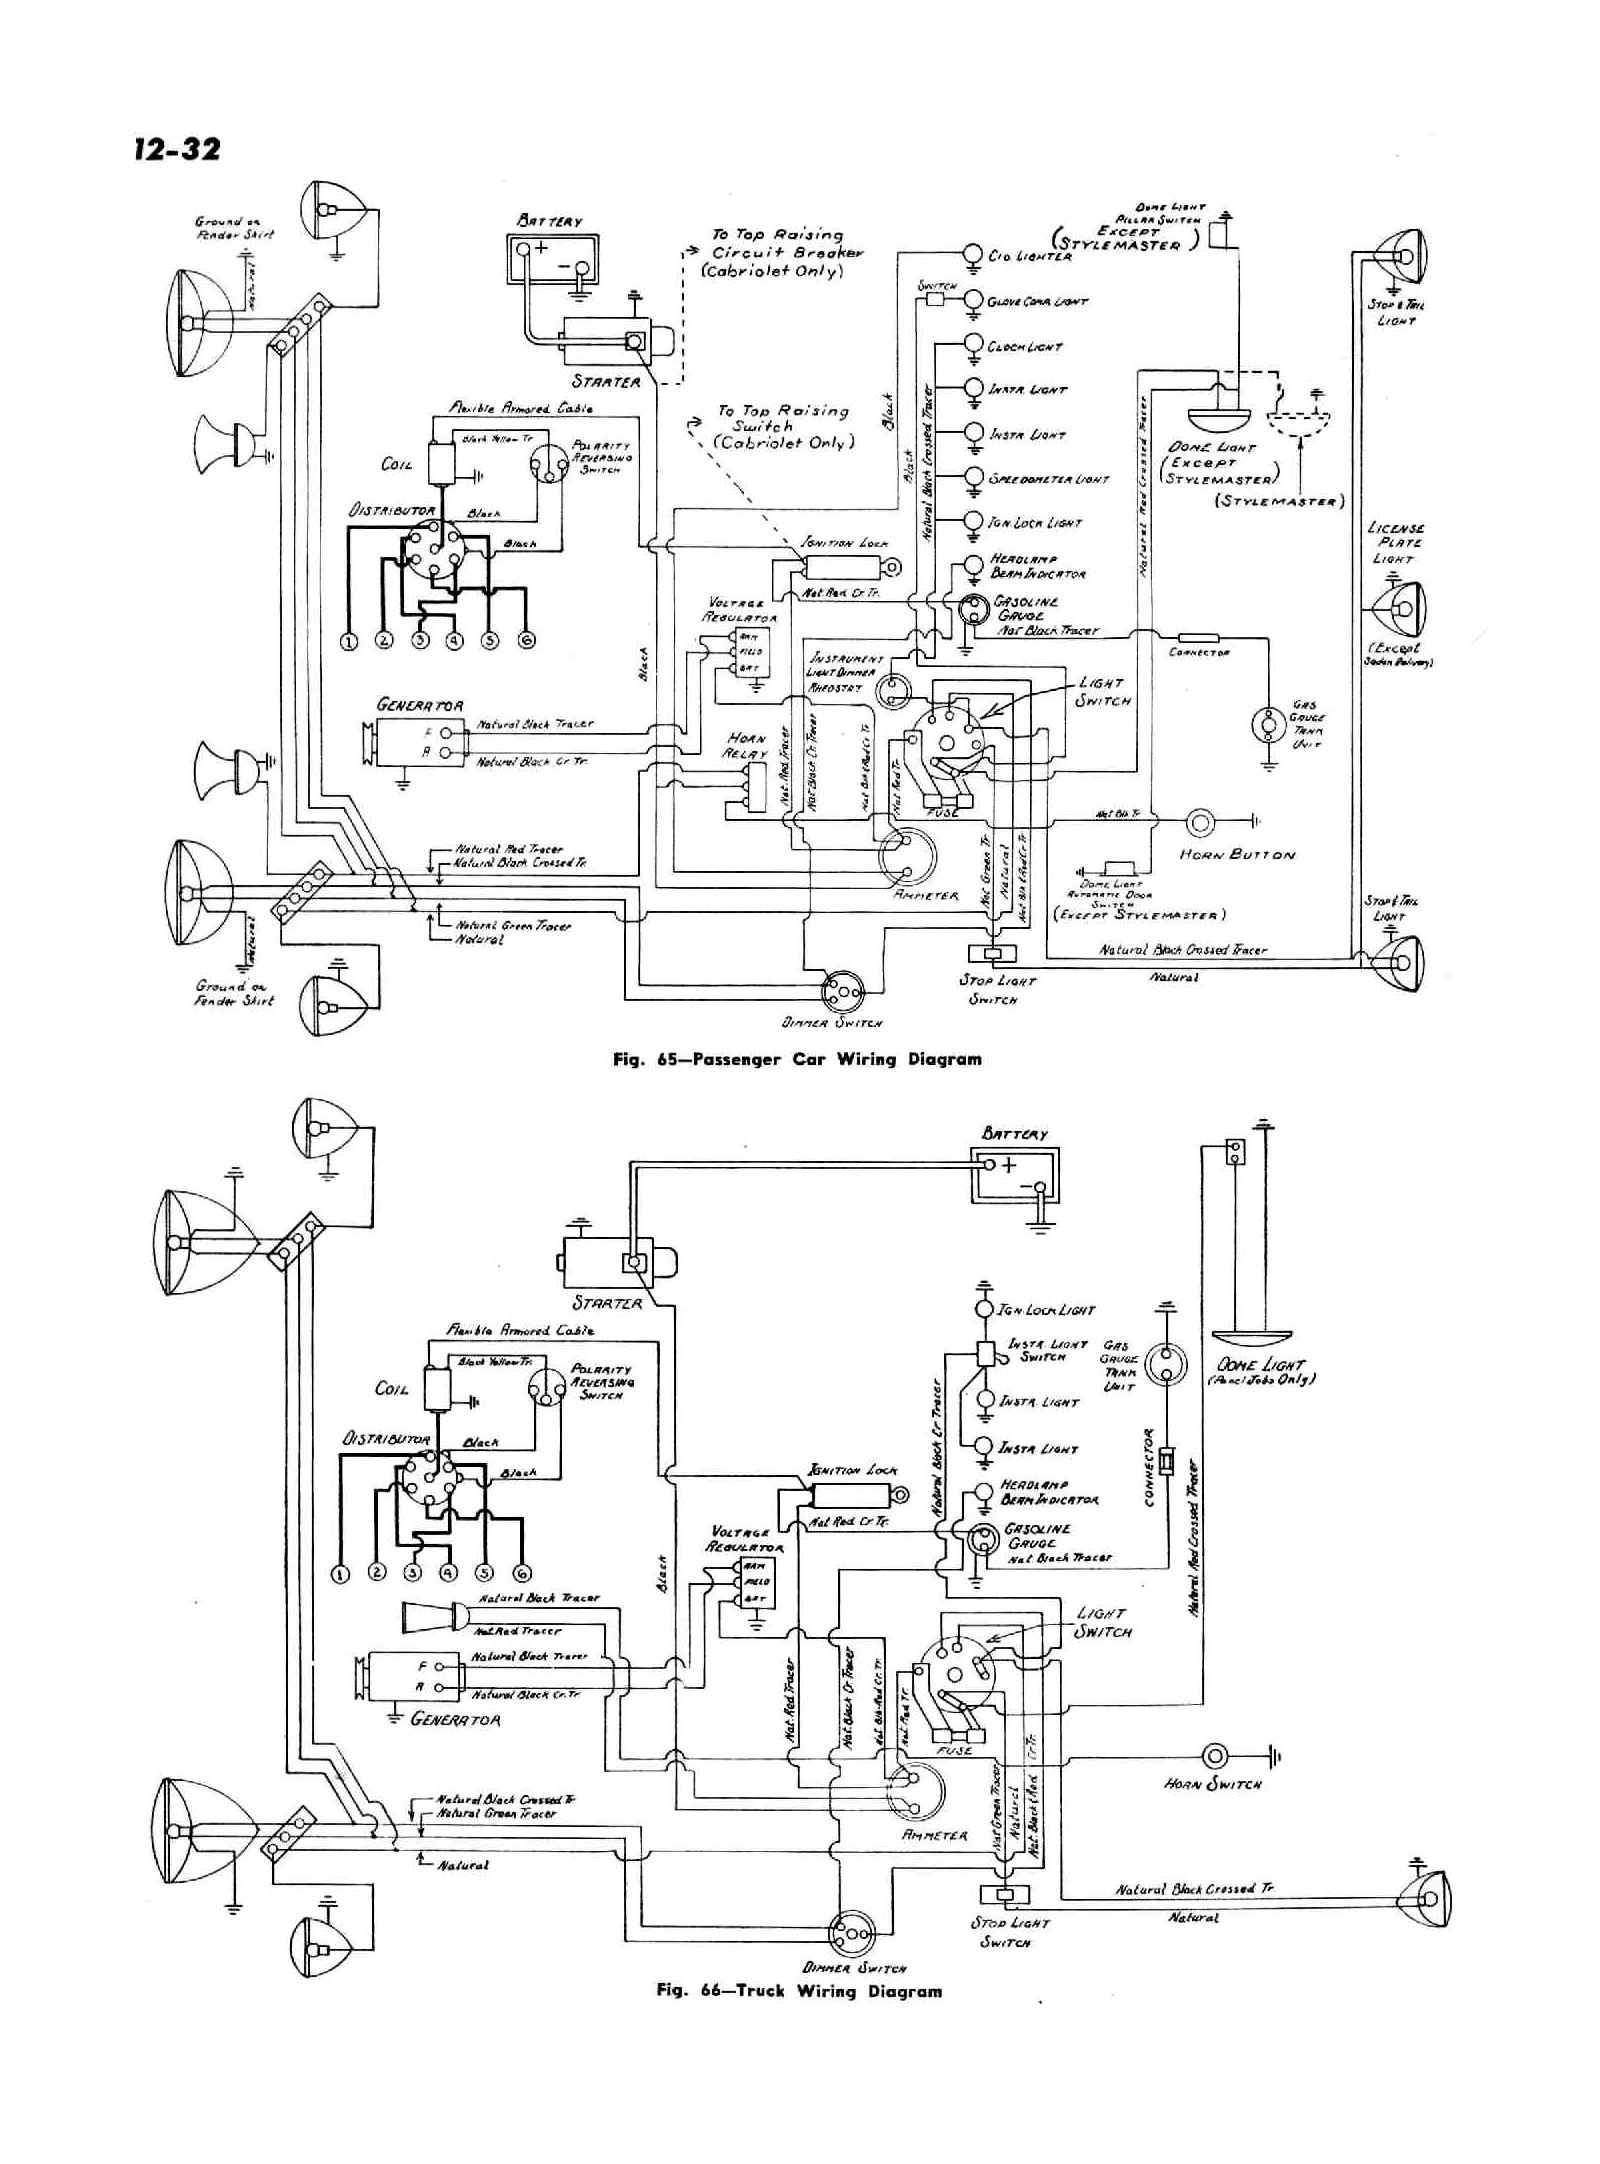 Wiring diagrams 1946 chevy wiring diagram 1946 chevy truck wiring diagram 1947 truck wiring · 1946